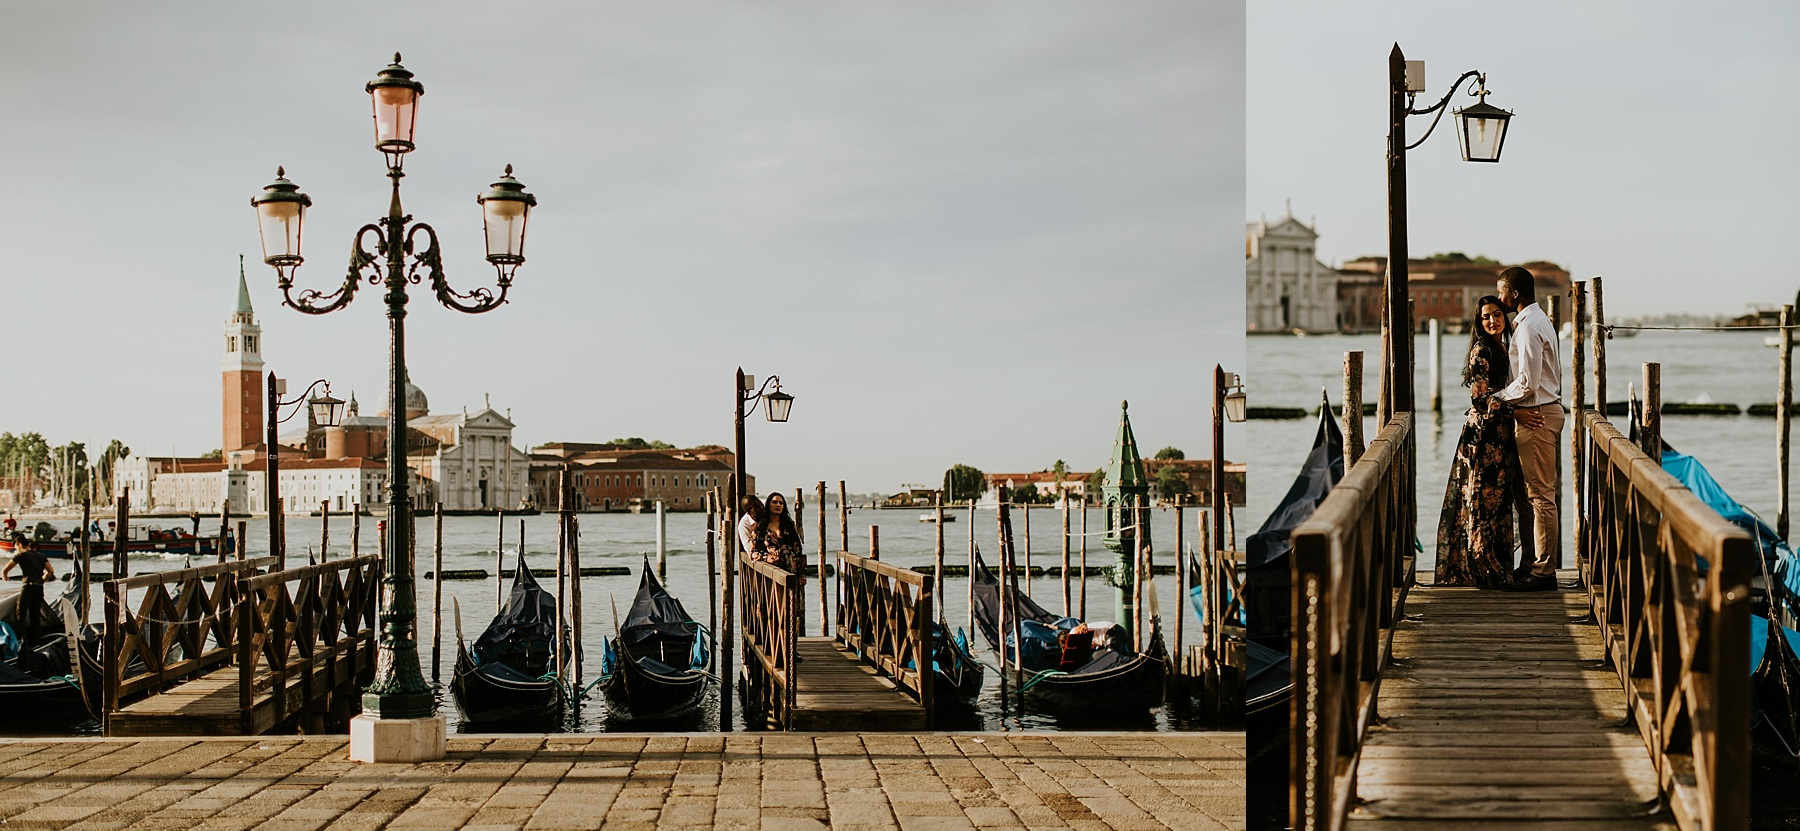 Honeymoon photo session in Venice